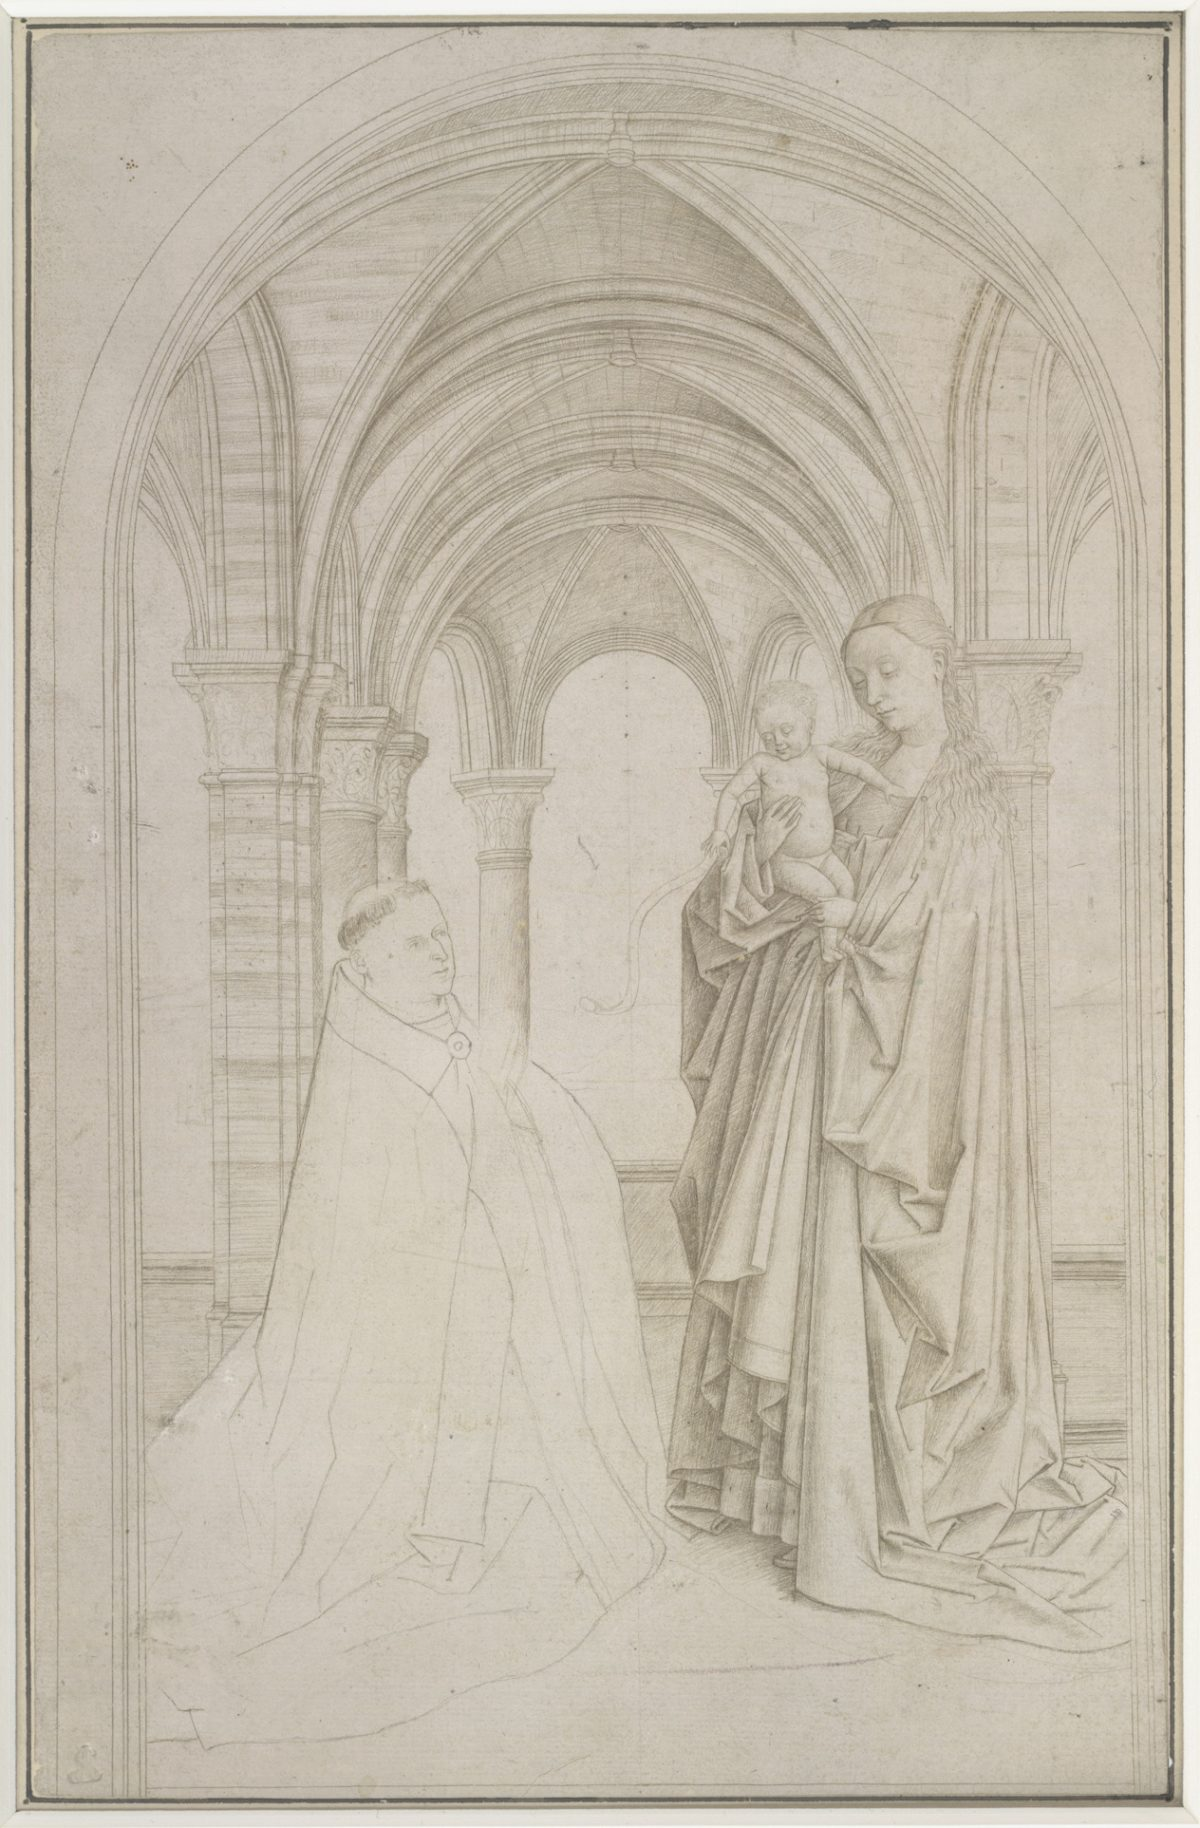 """""""The Virgin and Child with a Donor (copy after Jan van Eyck's Maelbeke Virgin),"""" Attributed to Petrus Christus. Silverpoint on prepared paper, 10 15/16 inches by 7 1/16 inches, The Albertina Museum, Vienna. (Courtesy of The Frick Collection)"""